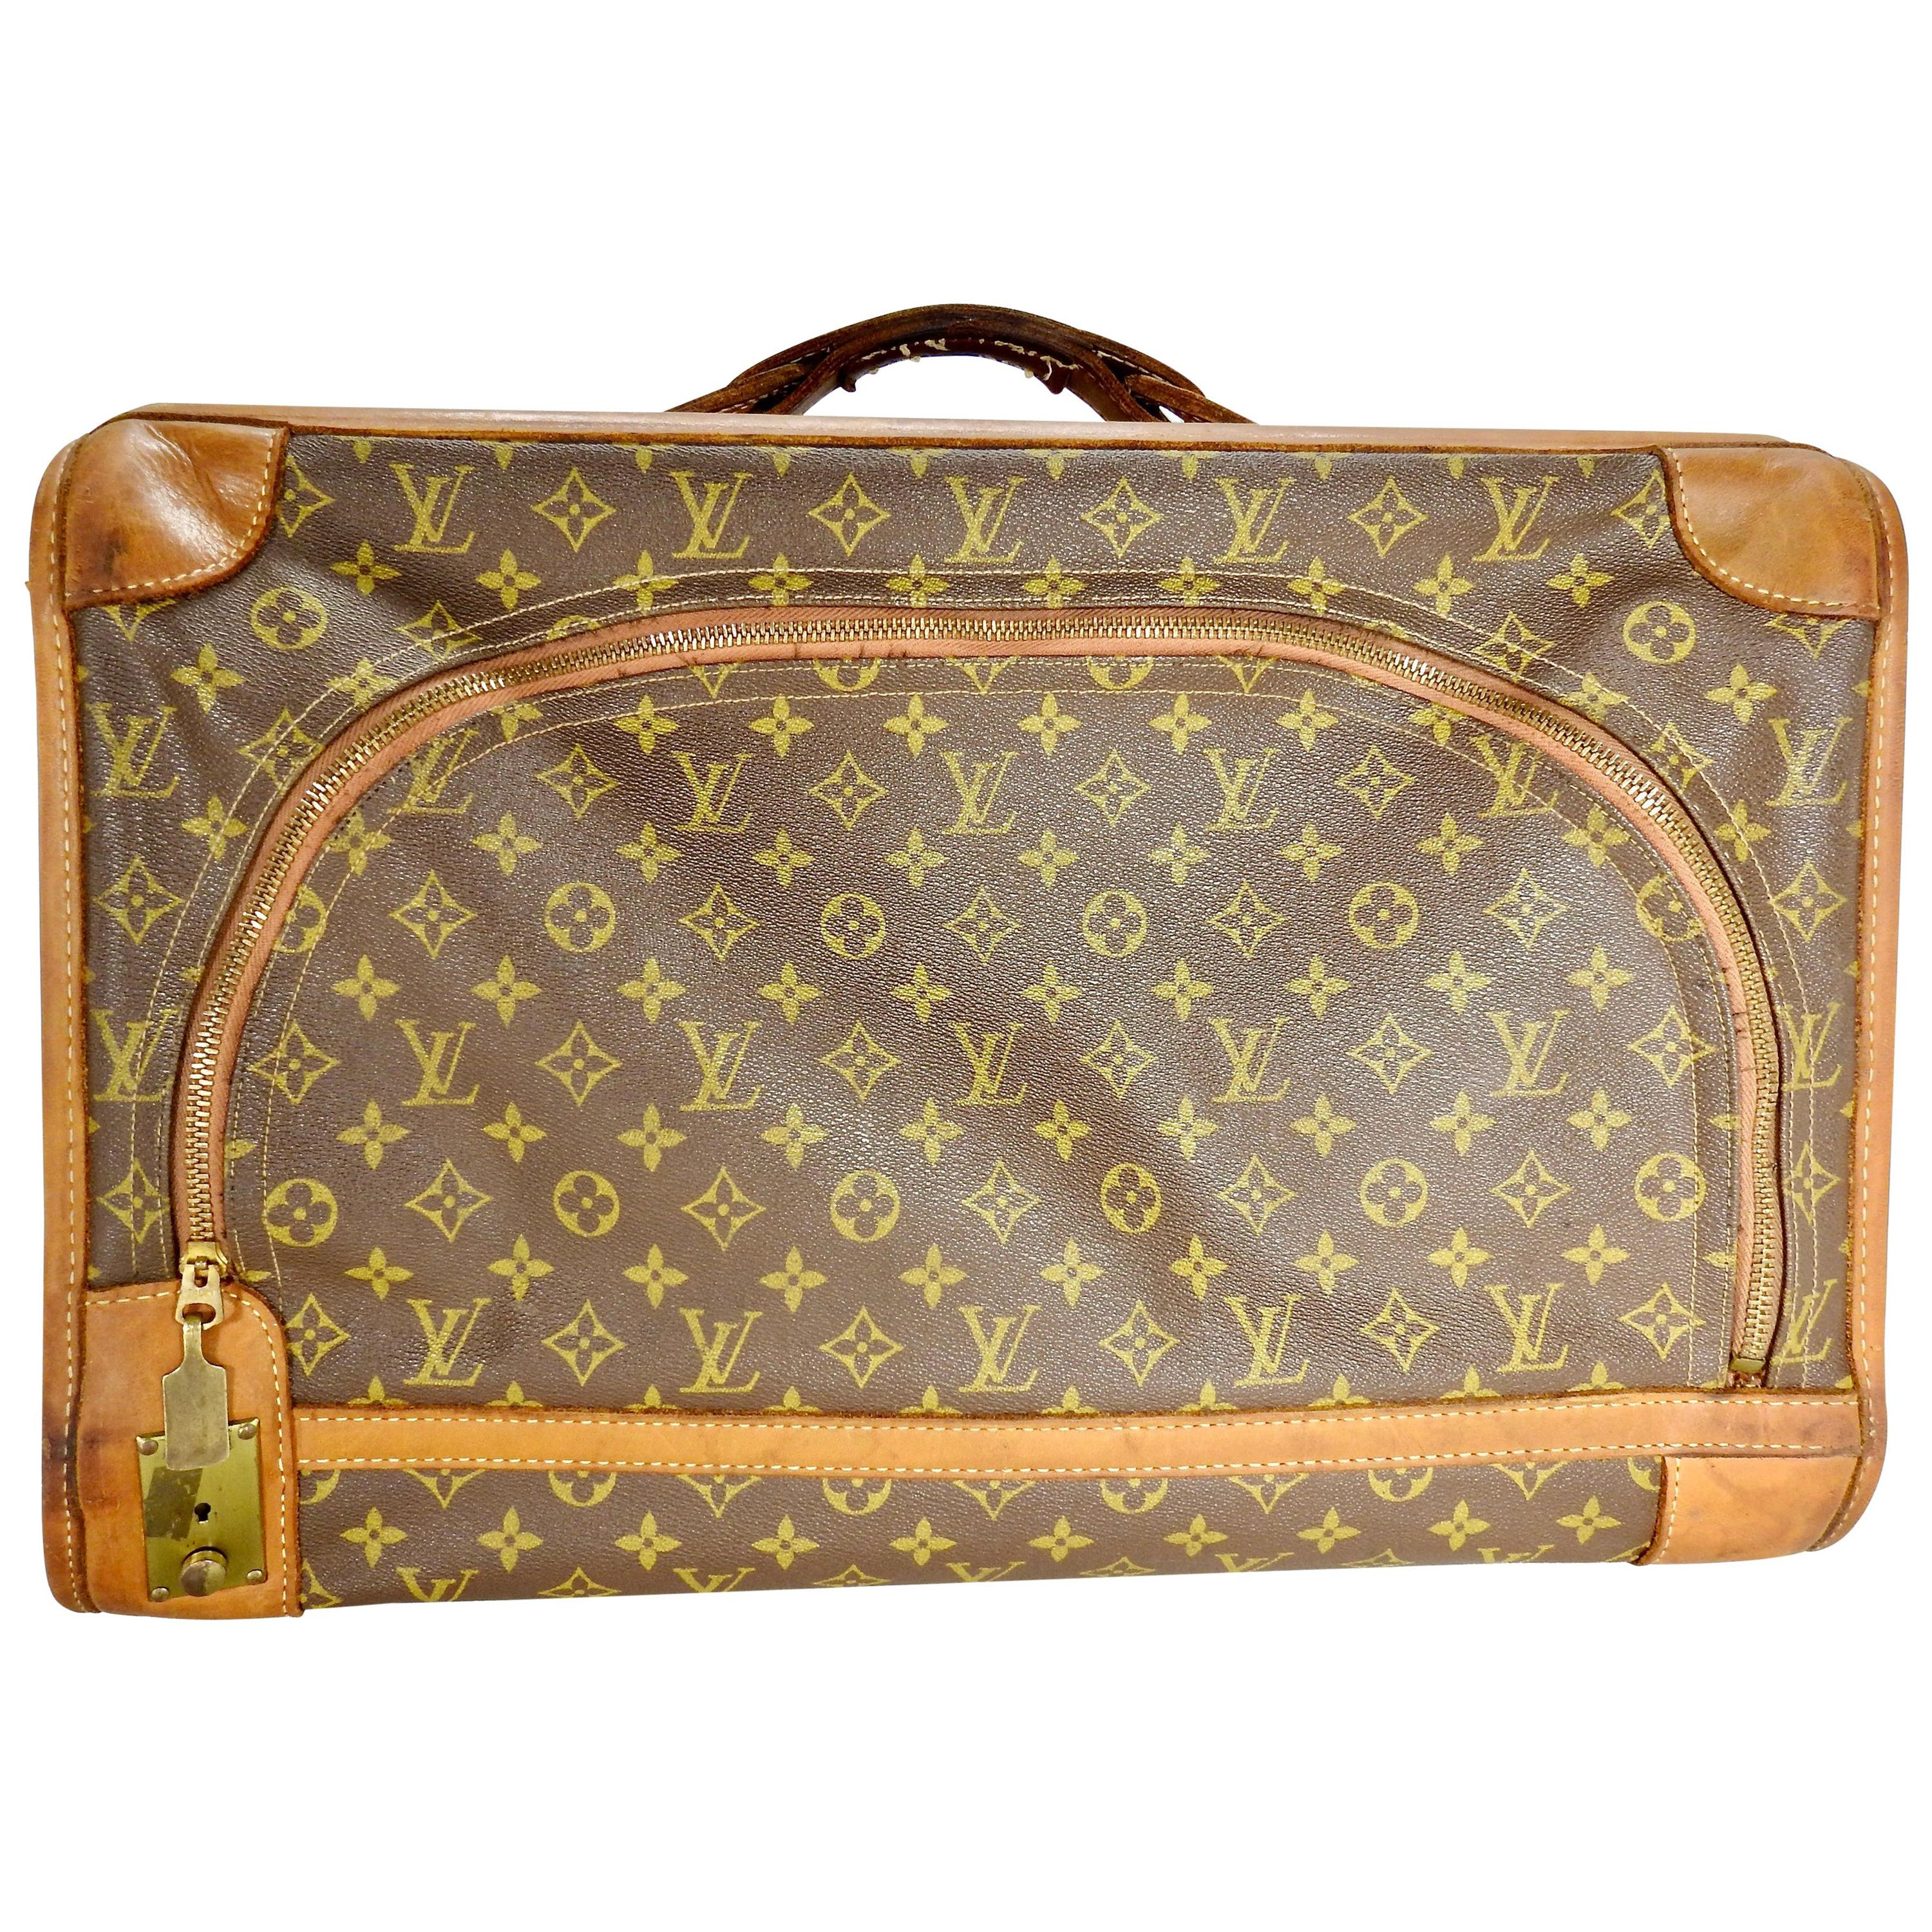 Louis Vuitton Soft Case Overnight Luggage Vintage